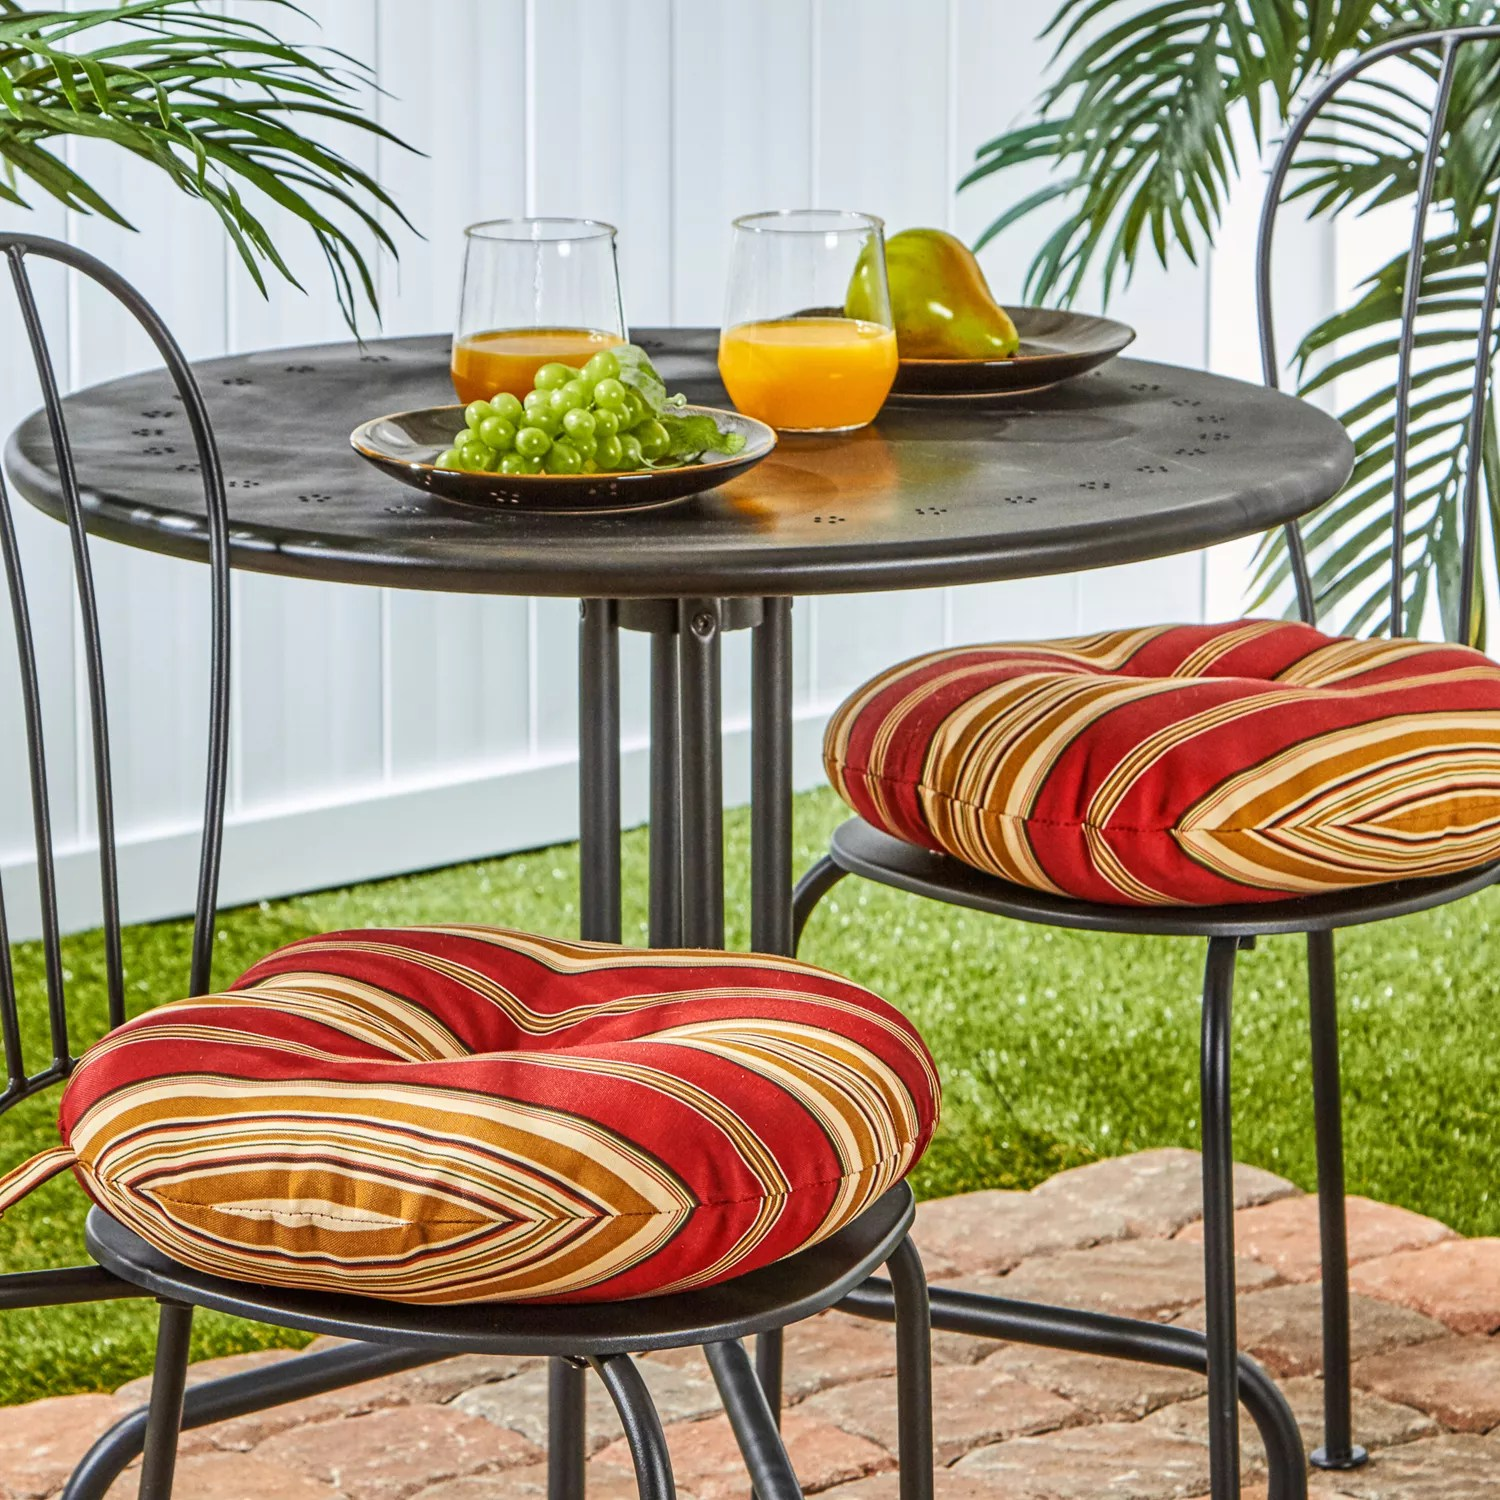 greendale home fashions solid 2 pk outdoor round chair cushions 15